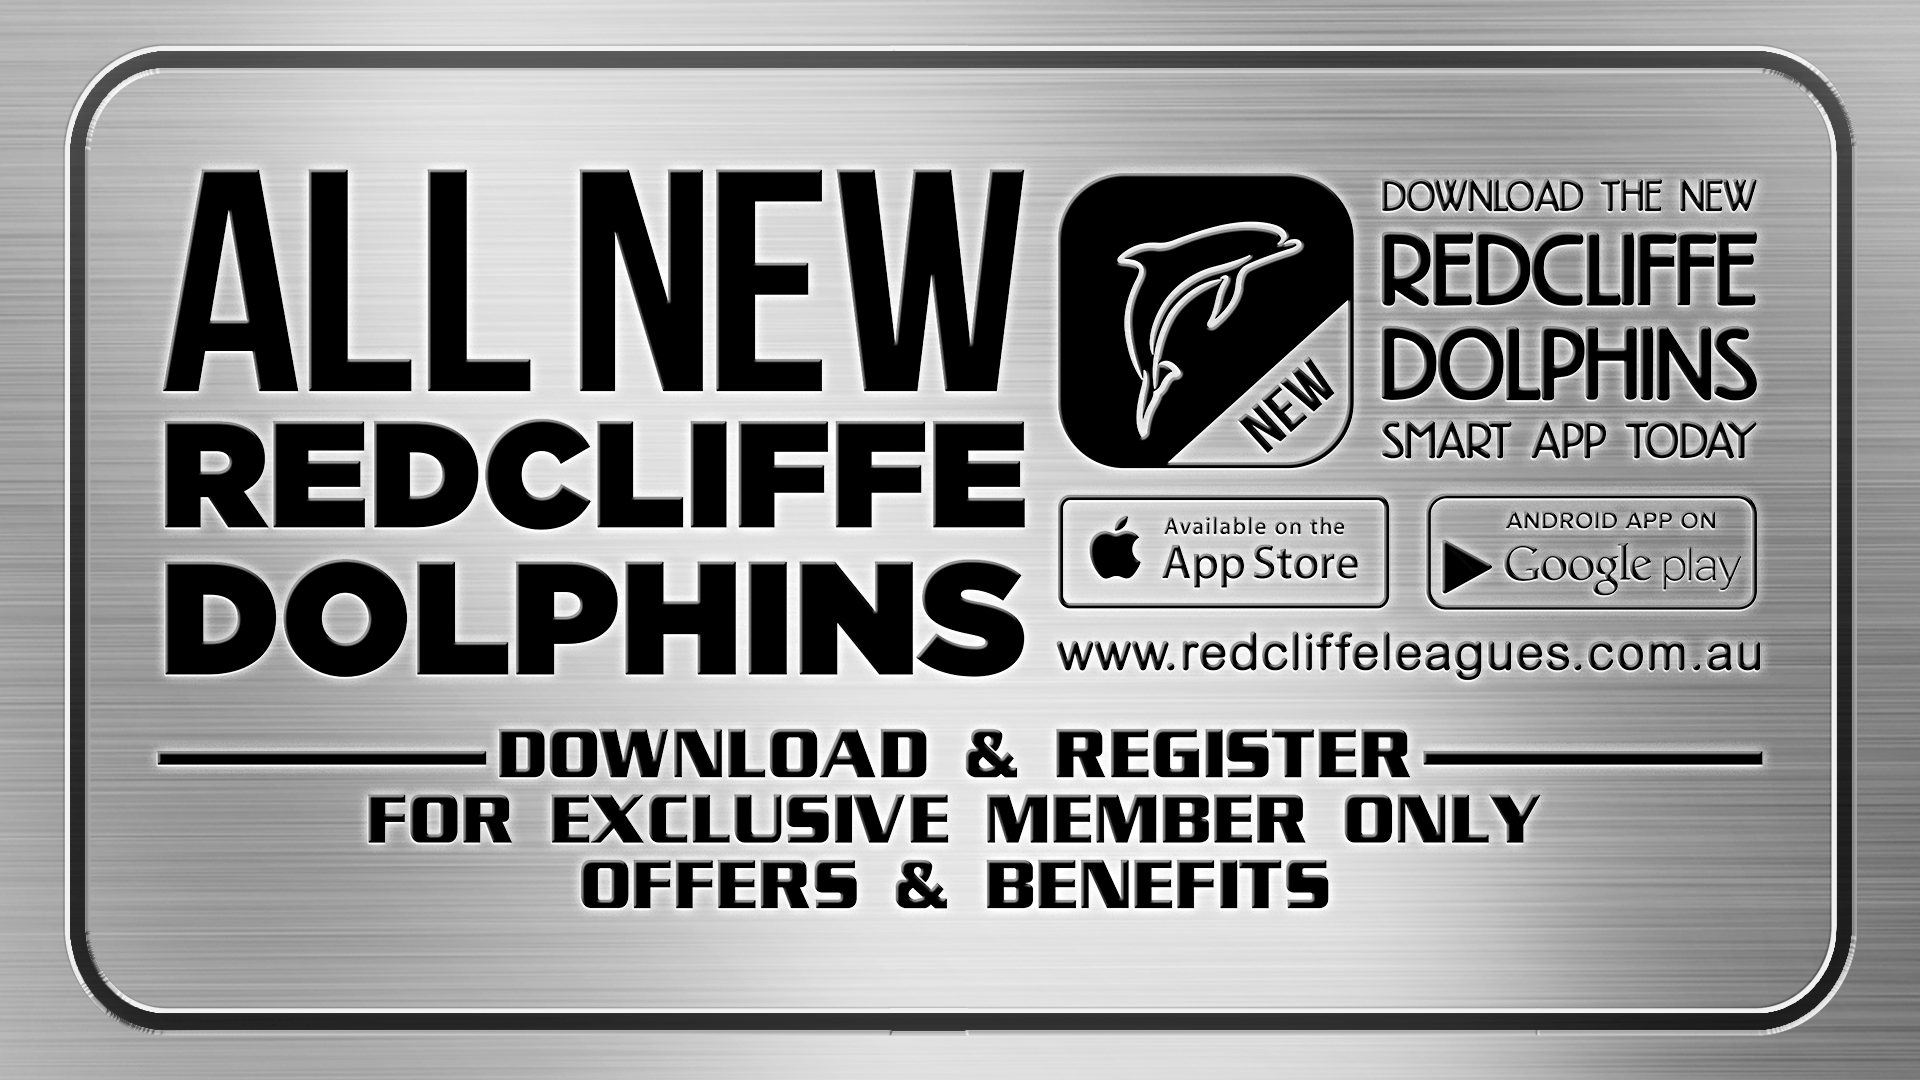 NEW Redcliffe Dolphins App TVW